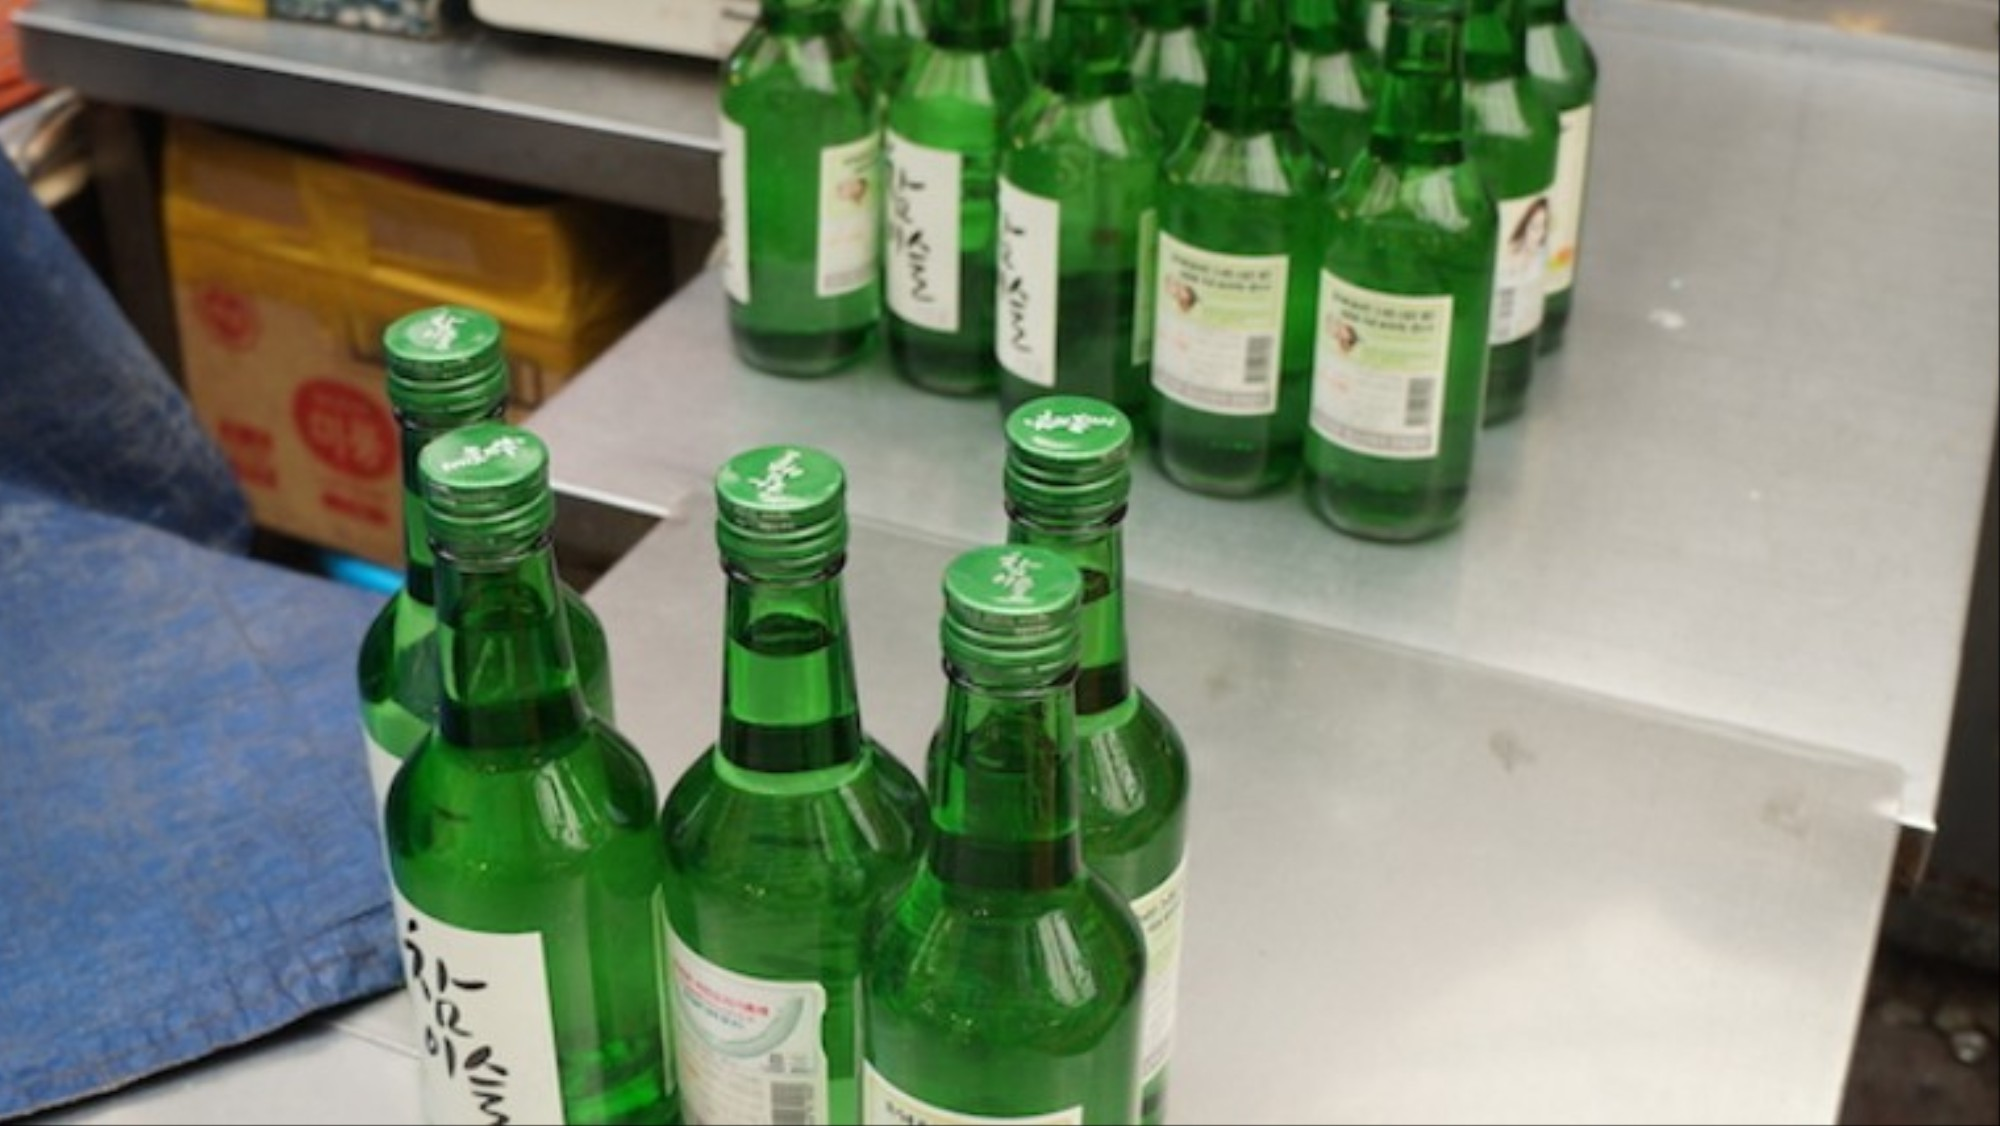 Soju Is Responsible for South Koreans Passing Out in the